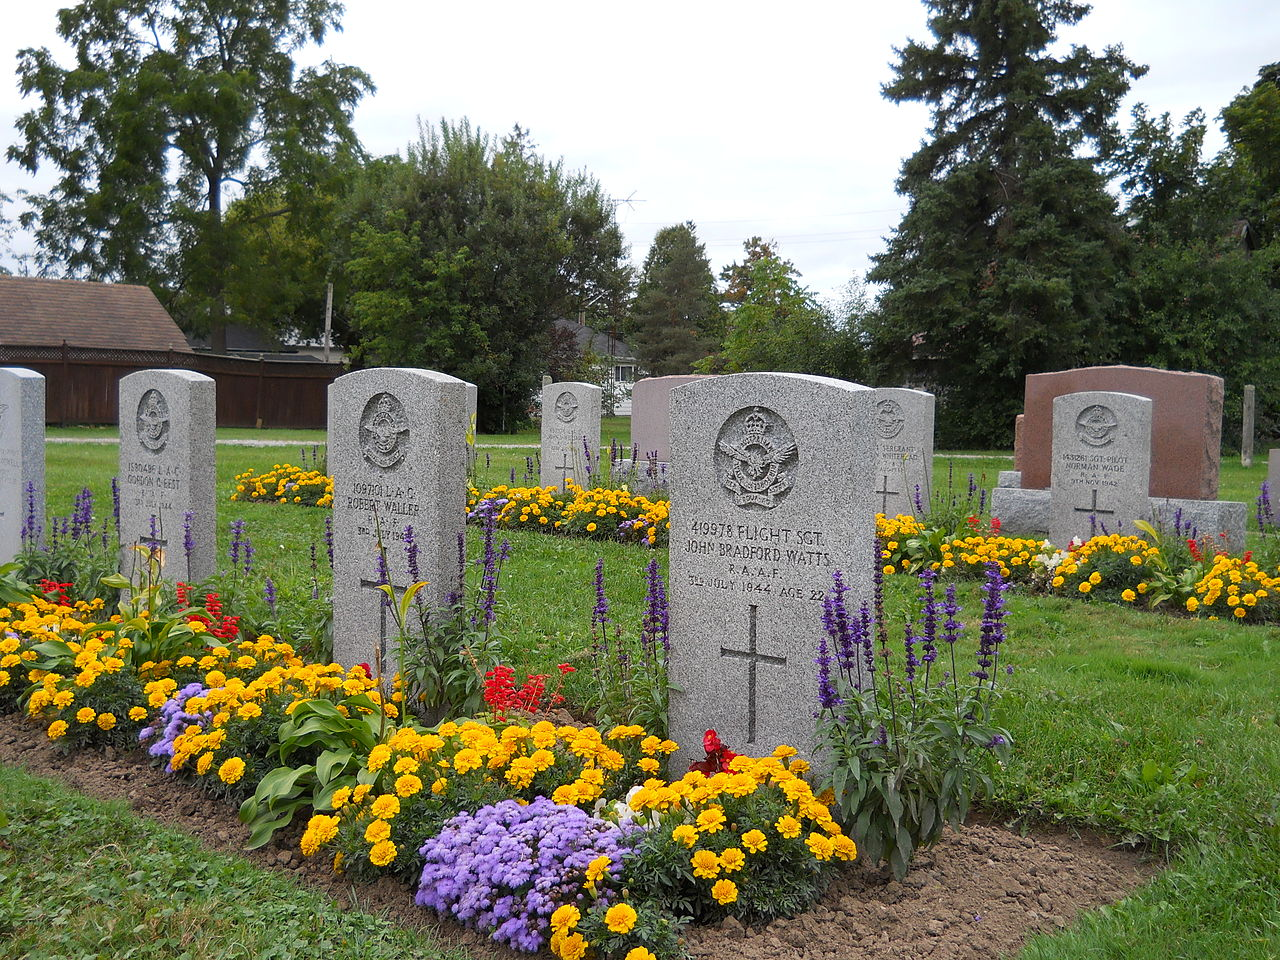 In the Knox Presbyterian Cemetery in Jarvis, Ontario, the final resting places of Australian, British and New Zealand candidates who were killed during training at No. 1 Bombing and Gunnery School at RCAF Jarvis are tended by the Commonwealth War Graves Commission. PHOTO: J. S. Bond